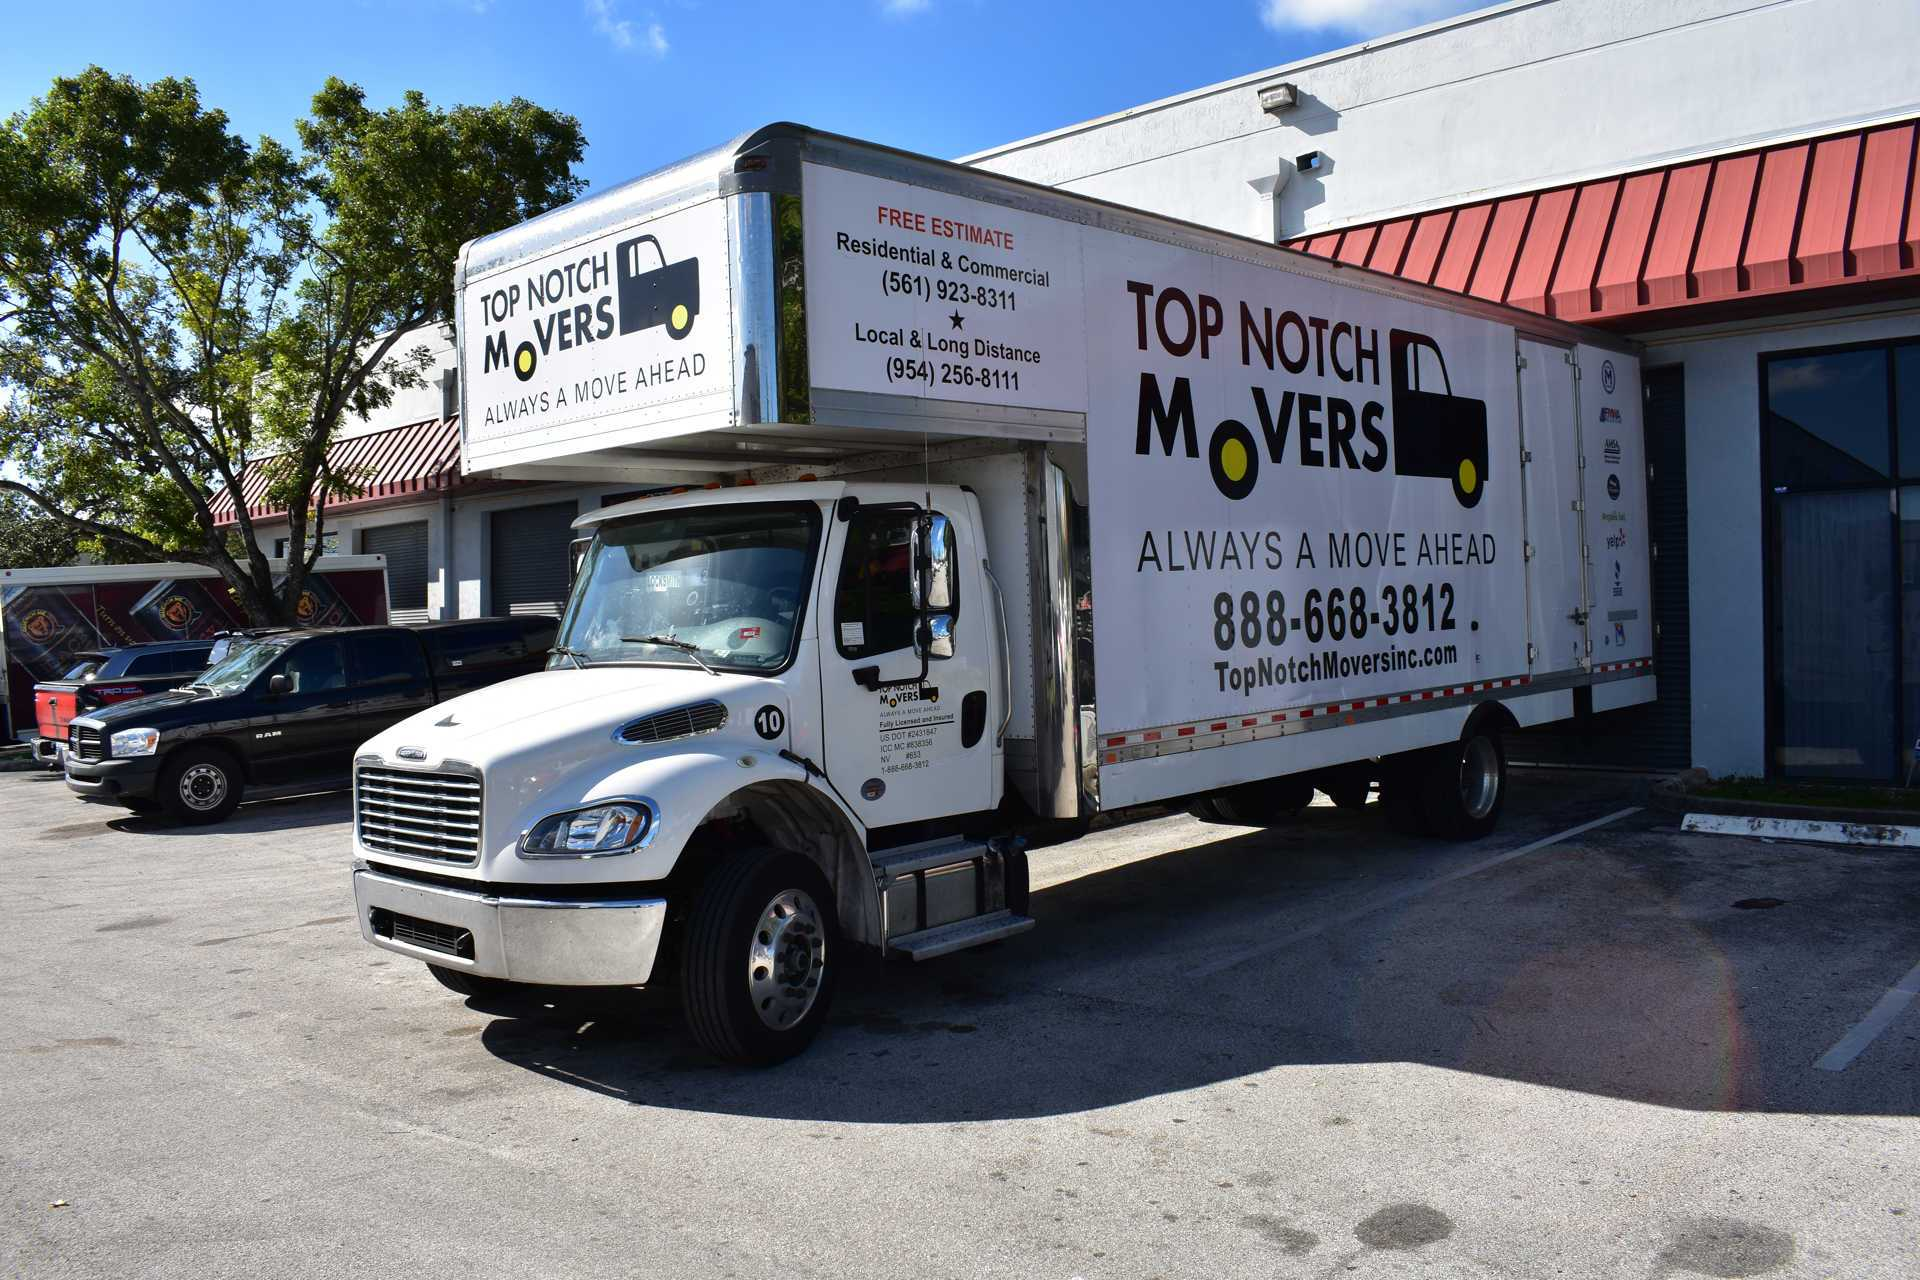 Fort Lauderdale Movers Licensed And Insured Top Notch